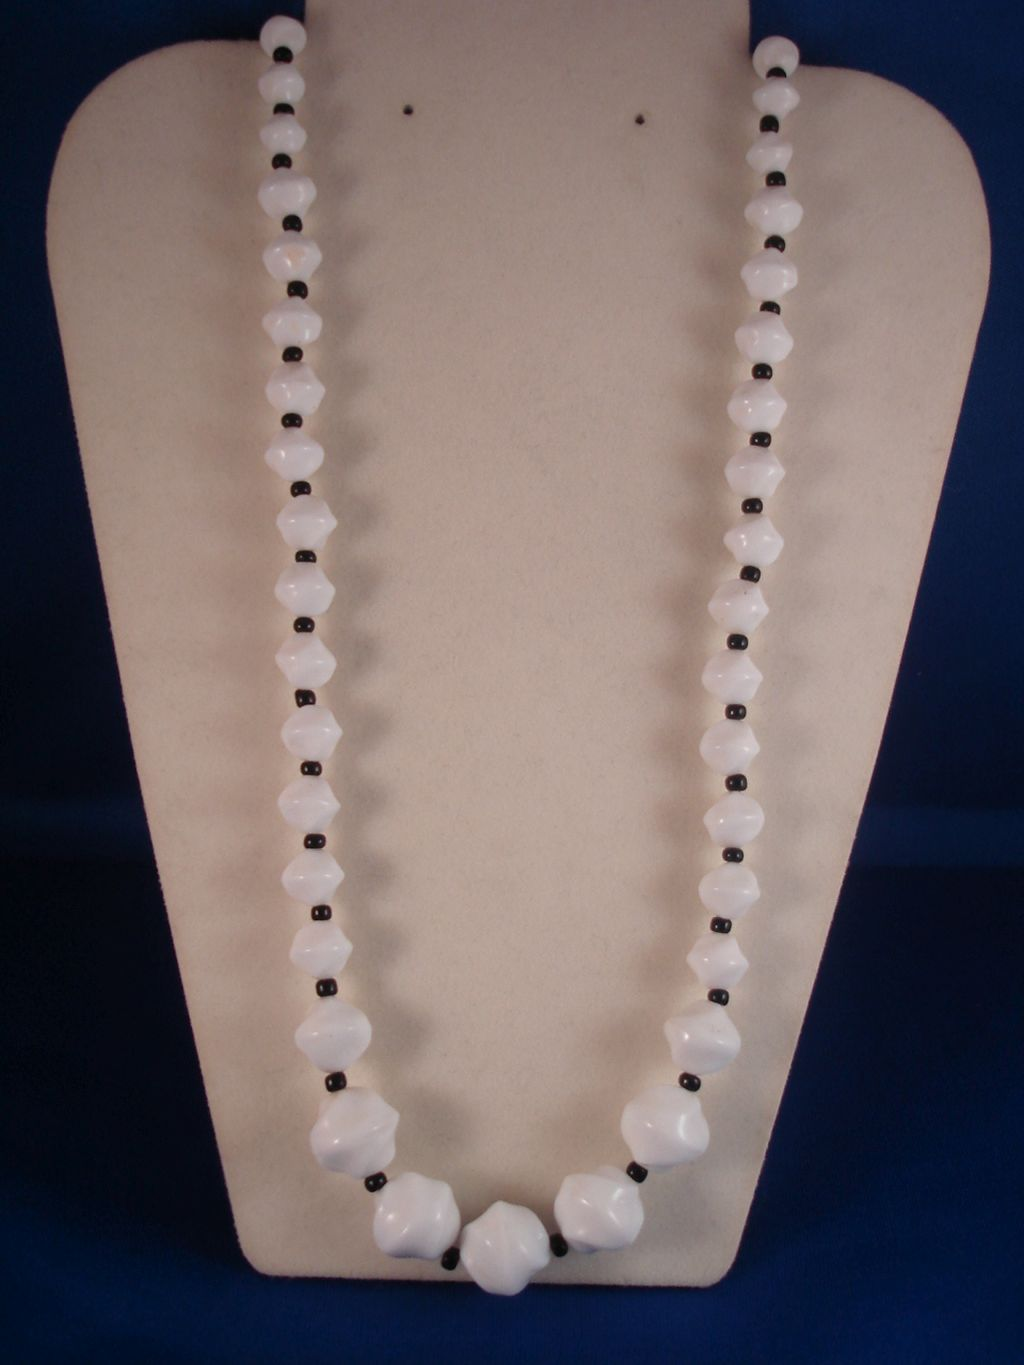 "White & Black Beads Necklace, 22"" long, Anti-allergic Jewelry"